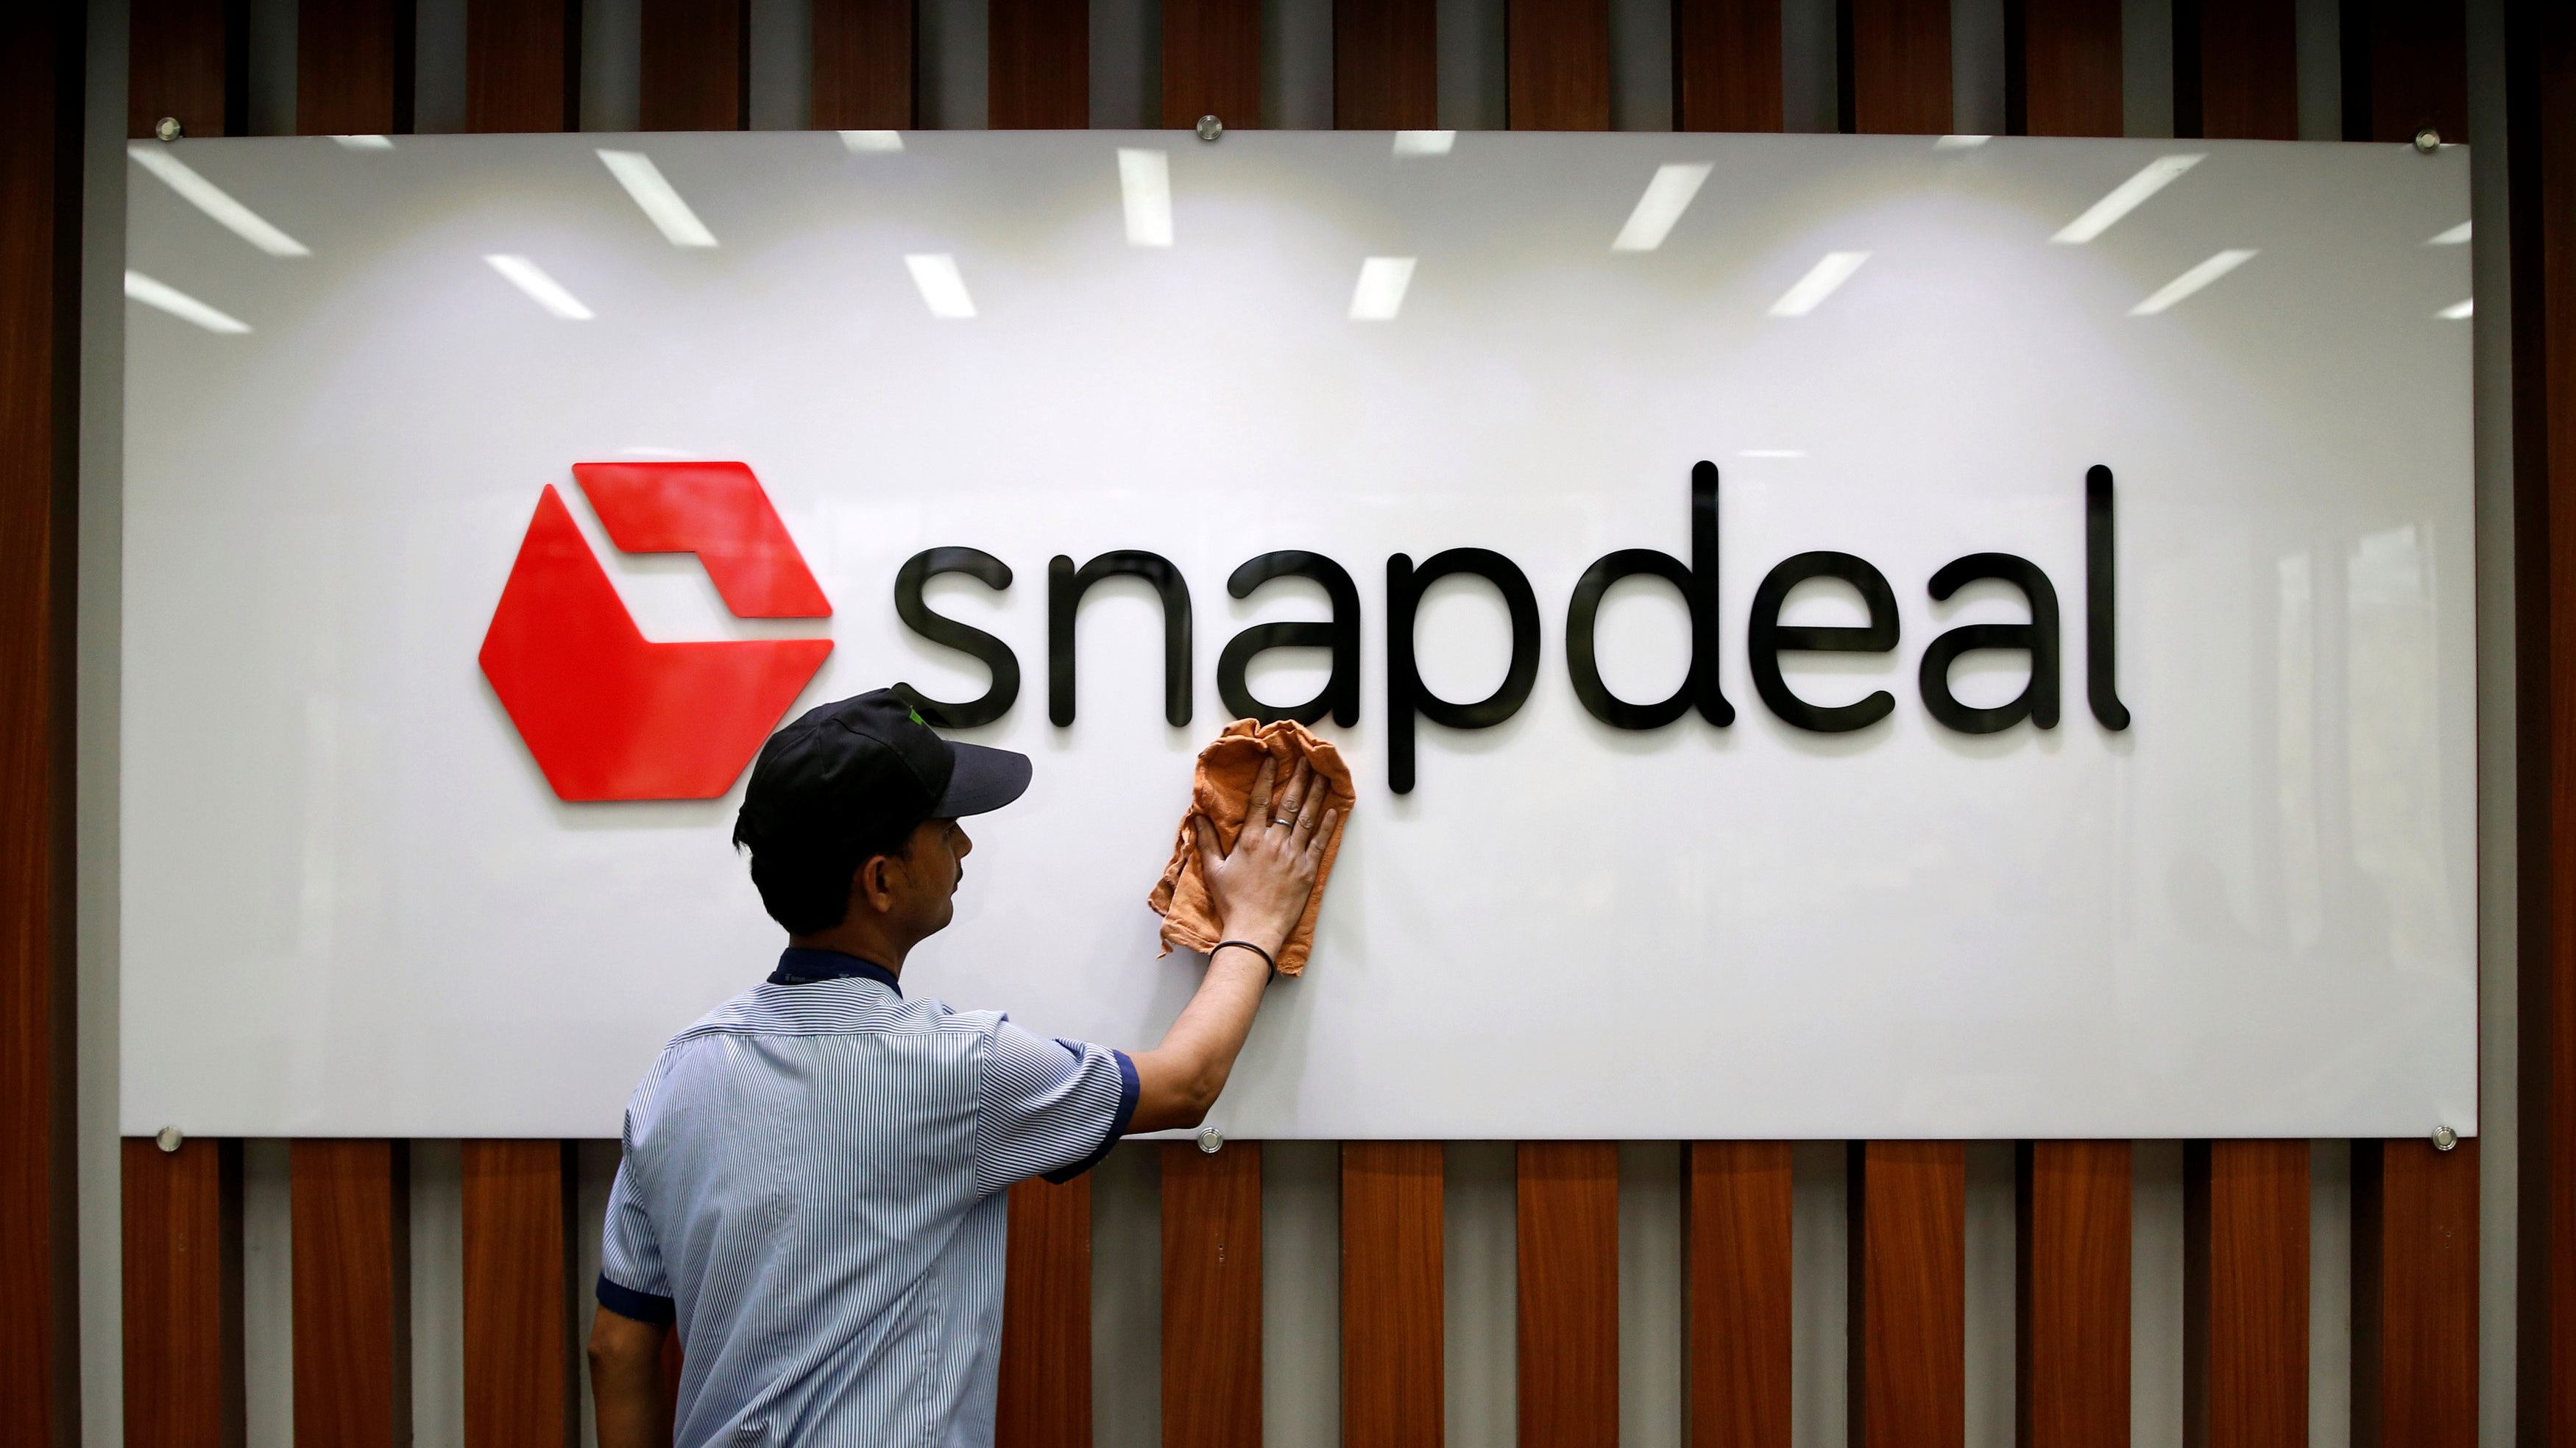 Snapdeal 2.0 faces a new world order in Indian e-commerce